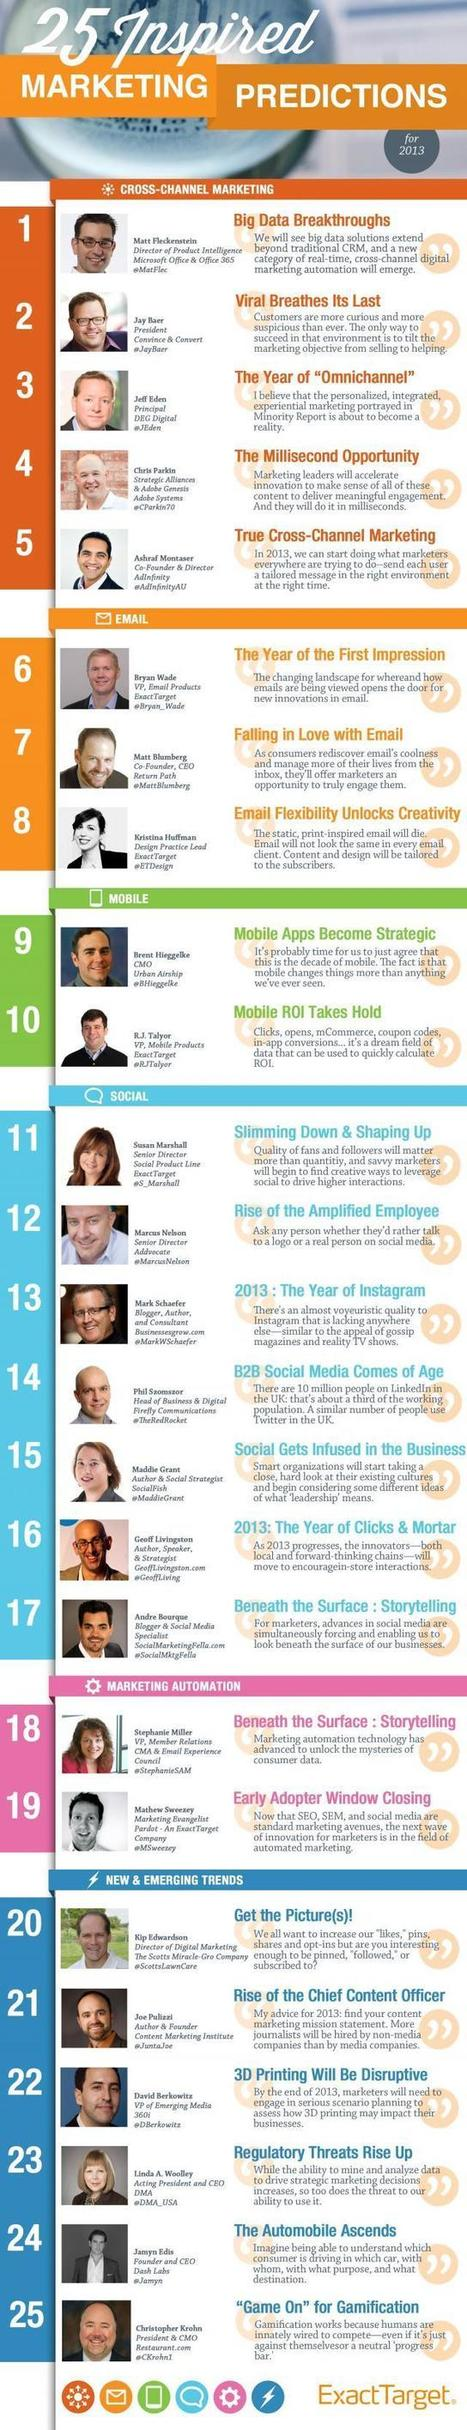 25 Inspired Marketing Predictions for 2013 | Marketing and Digital Communication | Scoop.it